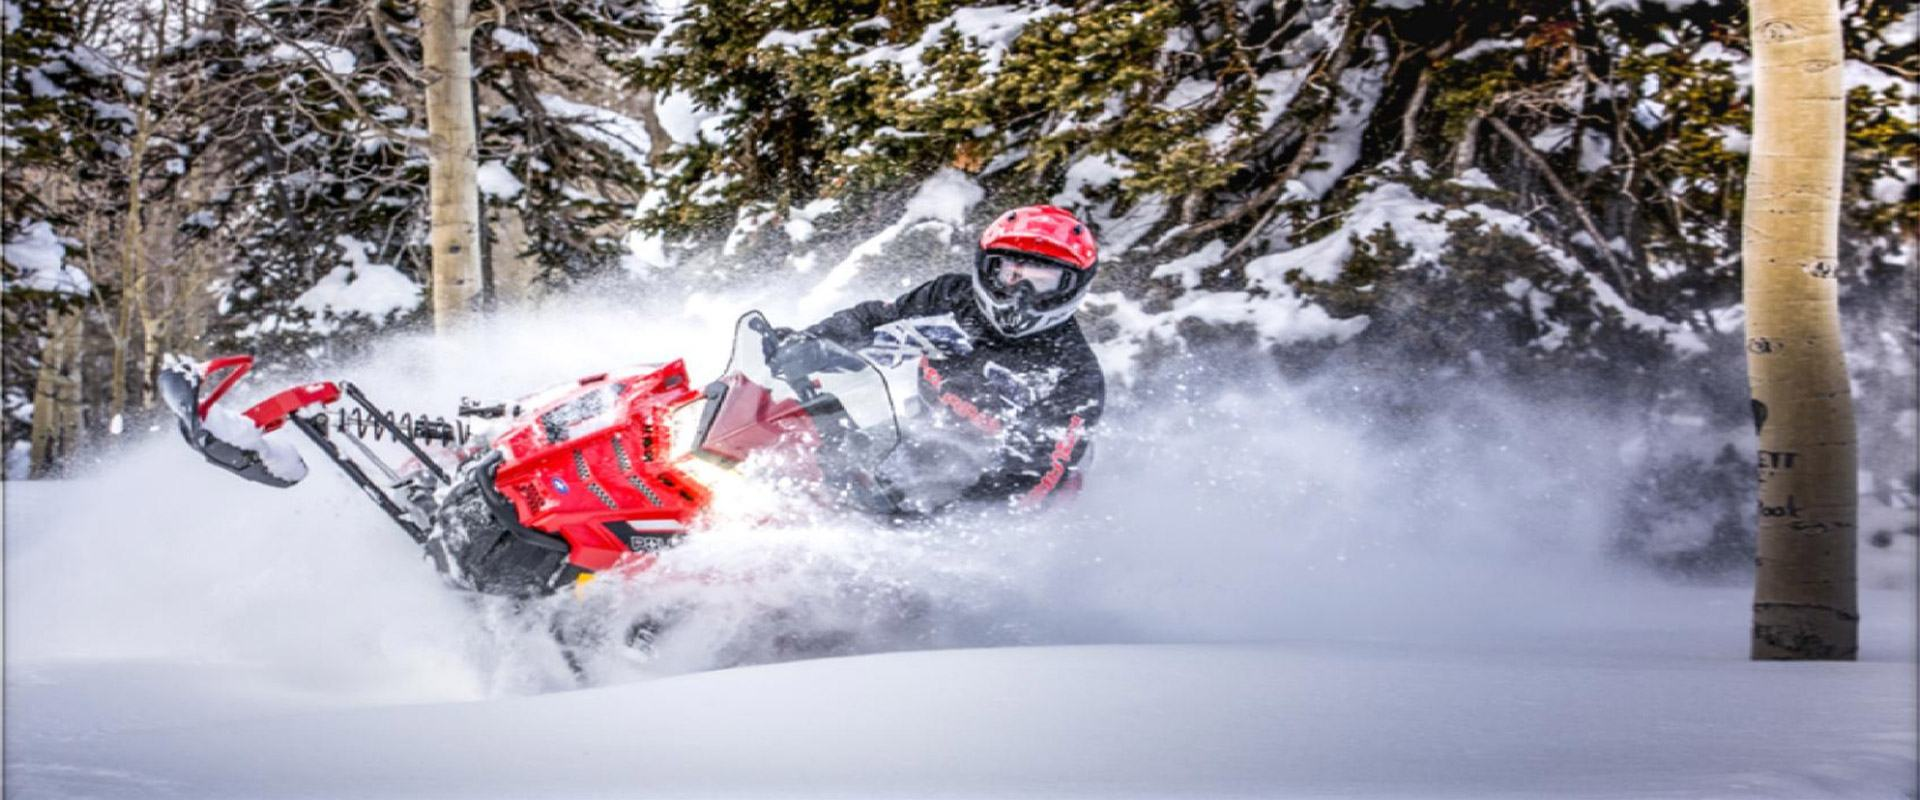 PolarisSnowmobile1-1920x800